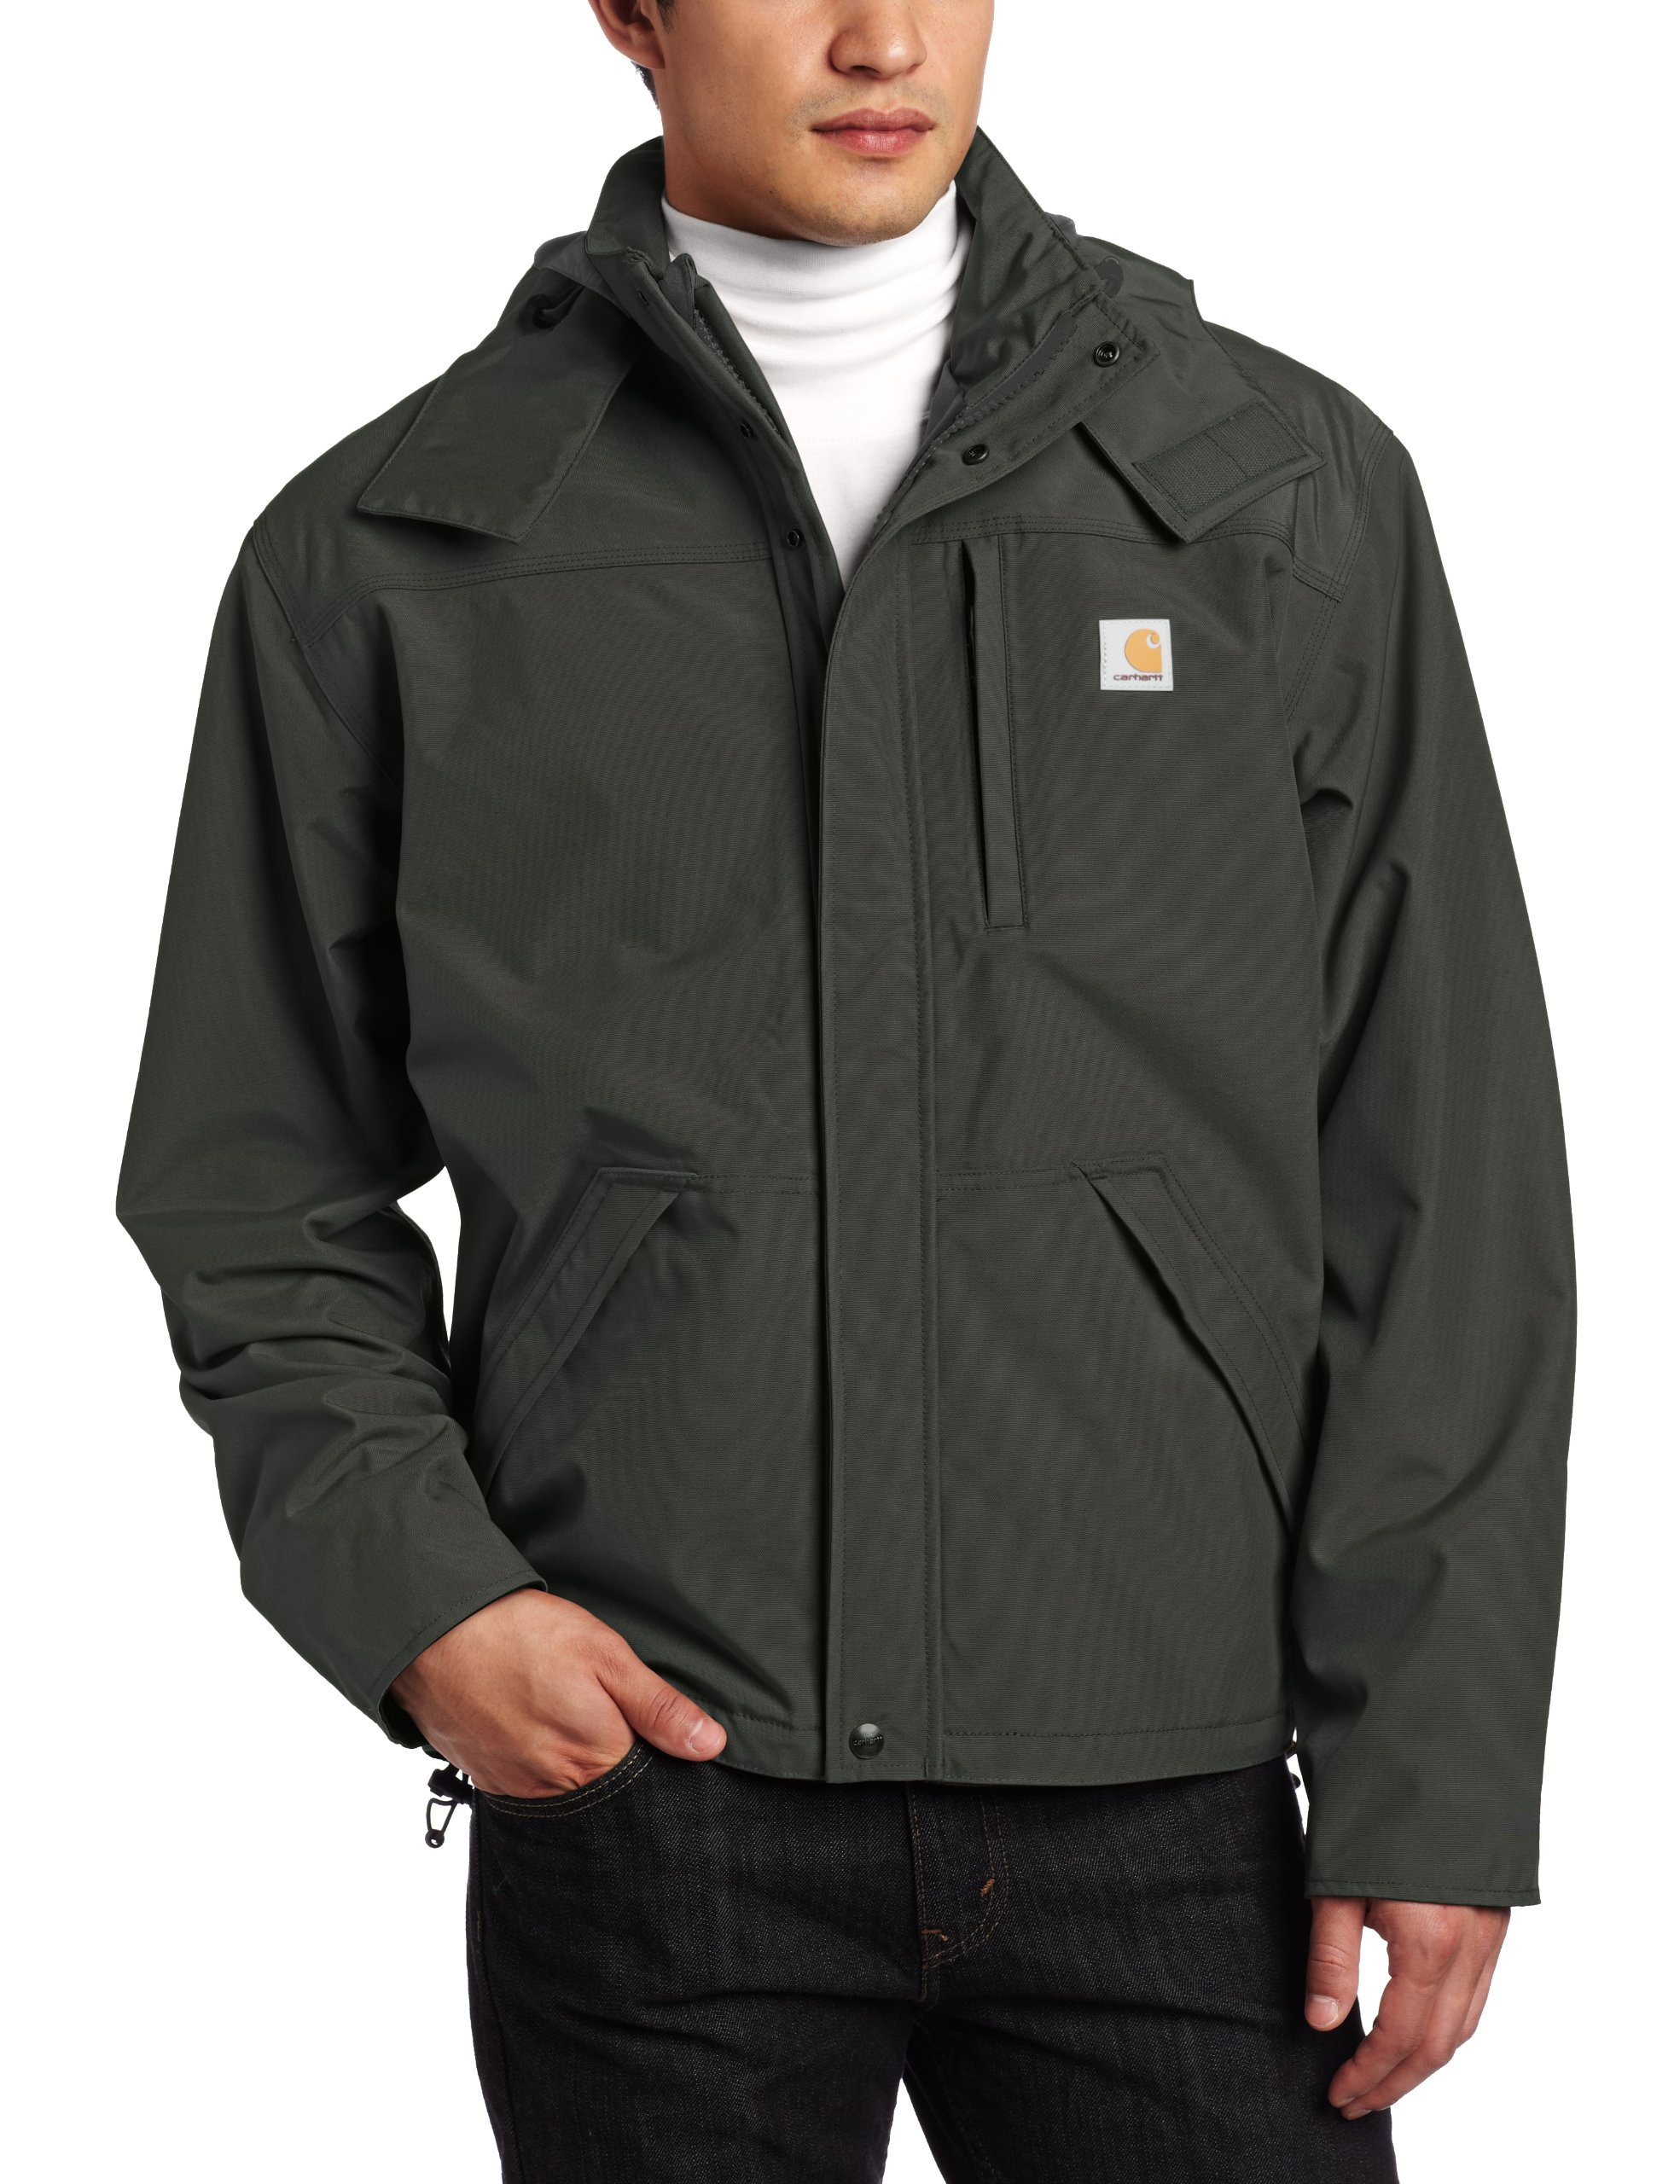 Carhartt Men's Shoreline Jacket Waterproof Breathable Nylon,Olive,Small by Carhartt